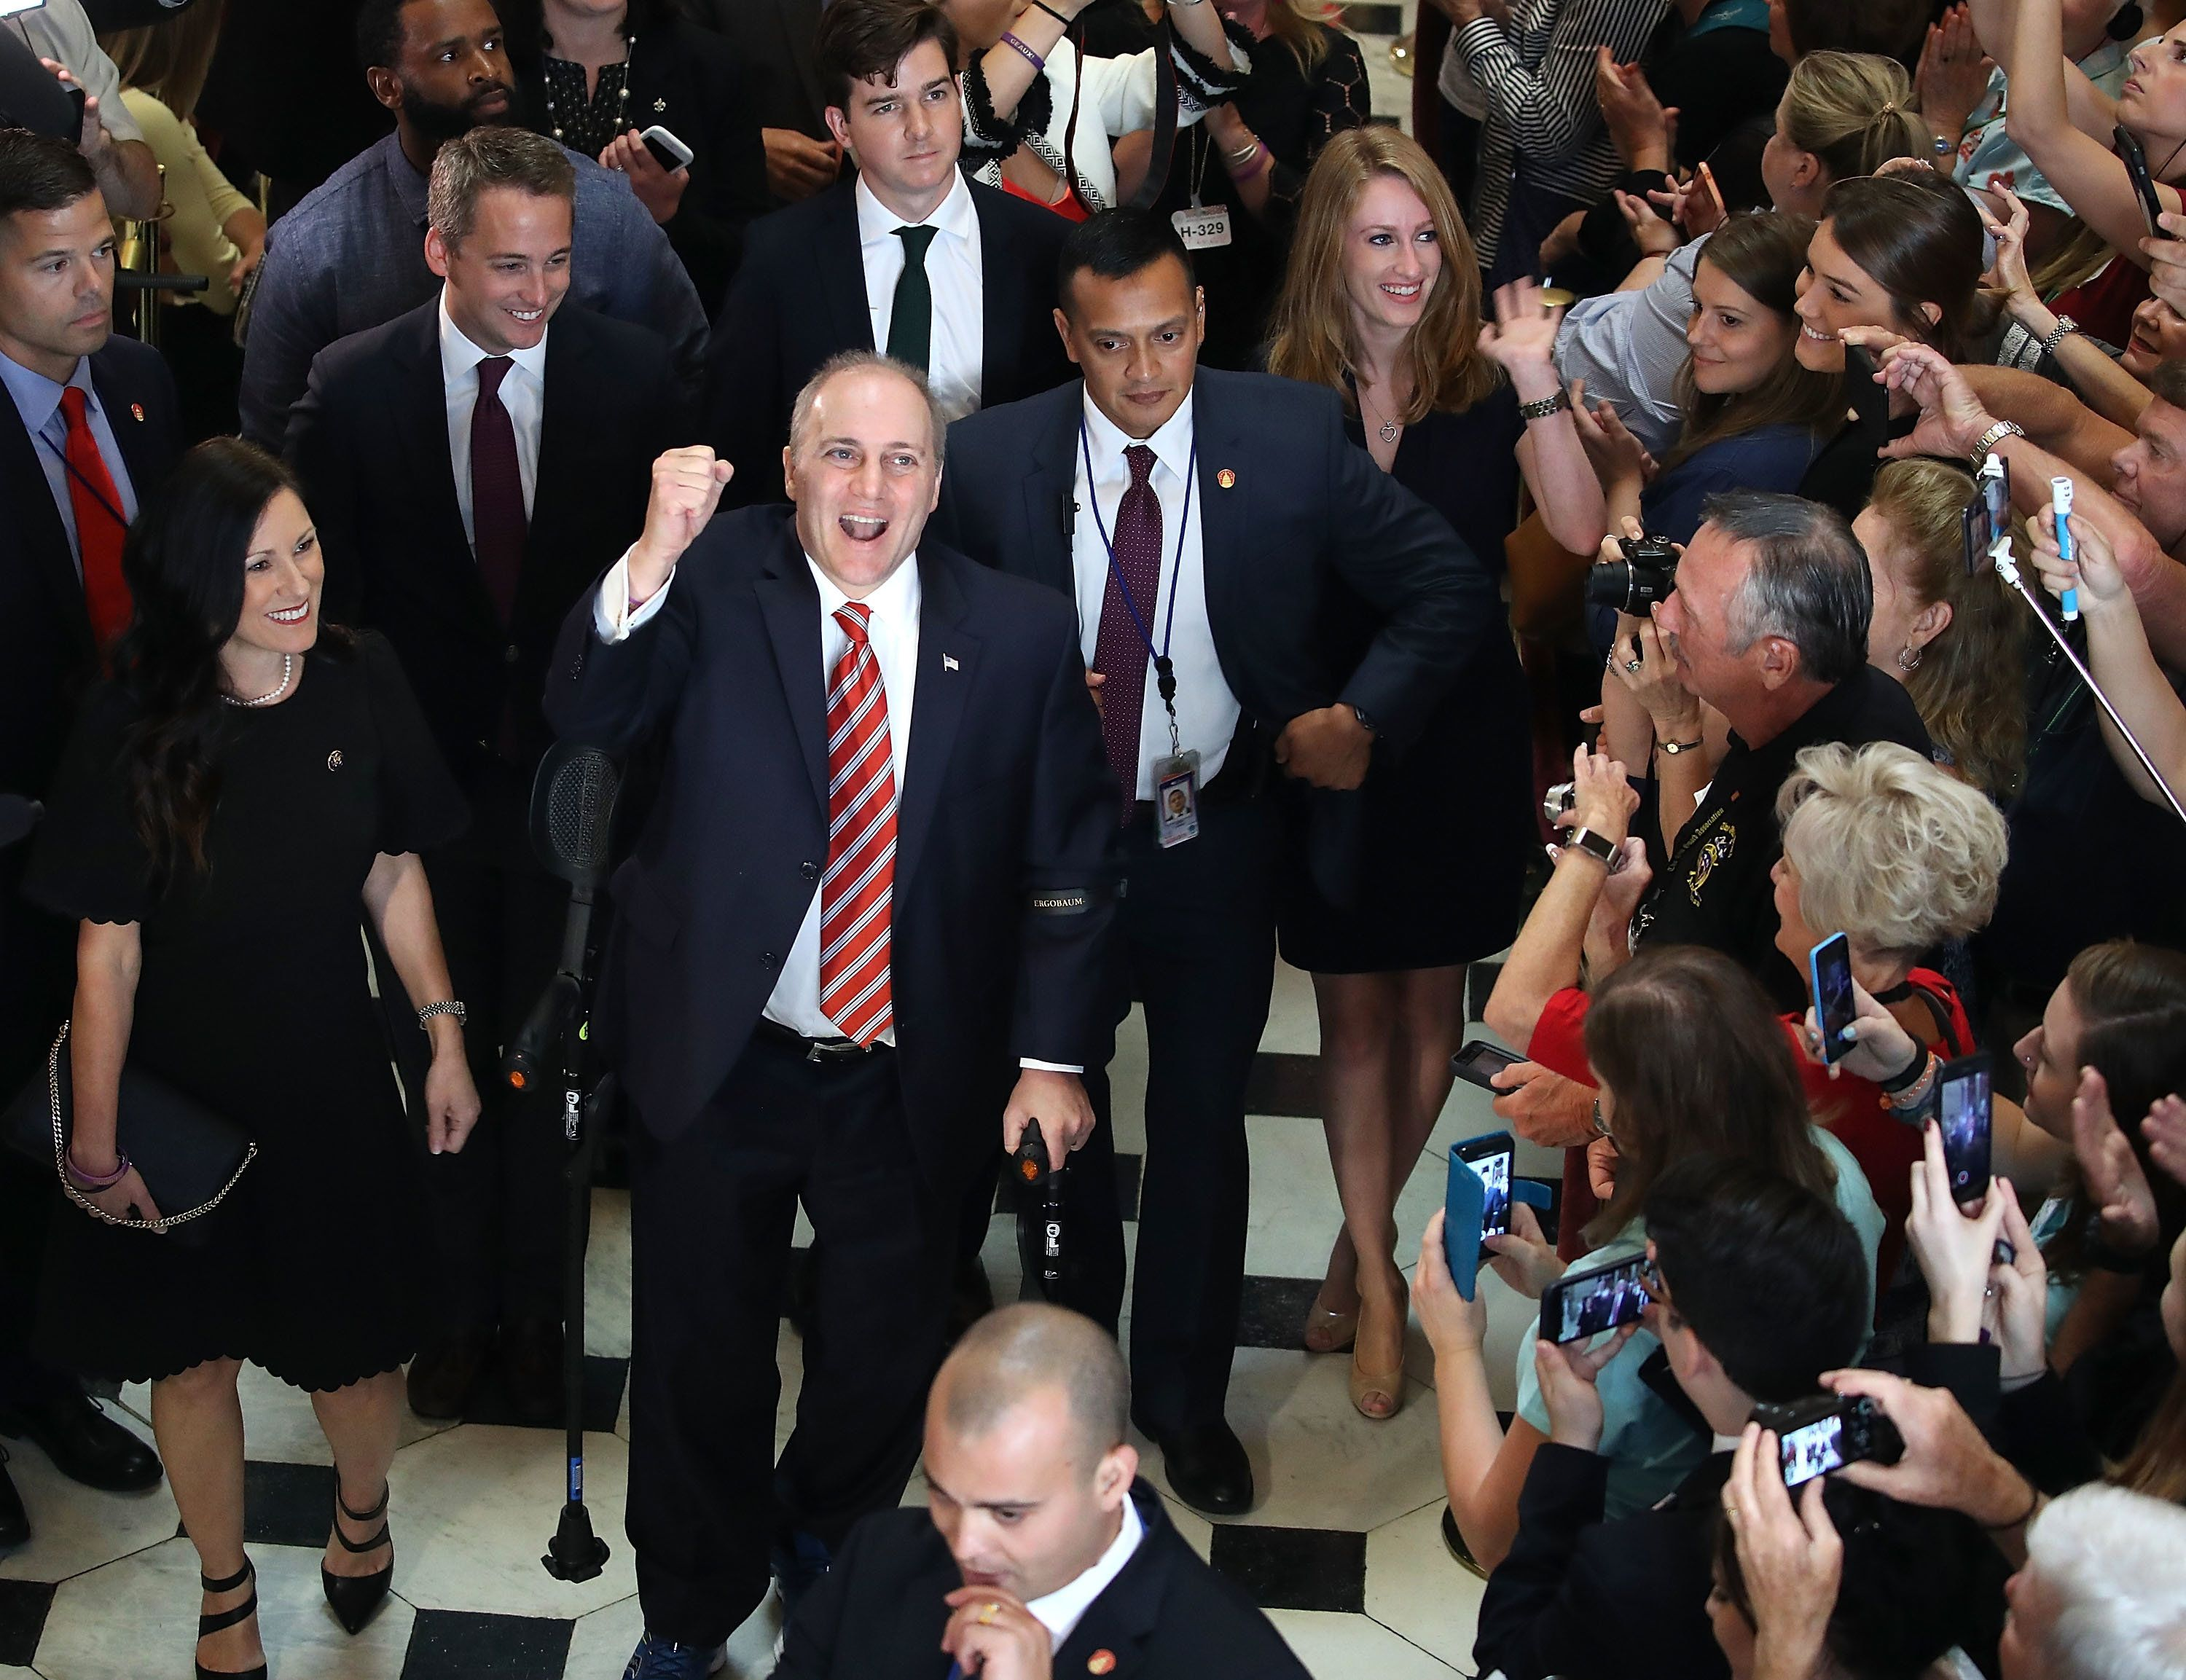 WASHINGTON, DC - SEPTEMBER 28: House Republican Whip Steve Scalise (R-LA) reacts to cheers as he returned to the Capitol Hill for the first time after being shot in June at a congressional baseball team practice in Alexandria Virginia, on September 28, 2017 in Washington, DC. (Photo by Mark Wilson/Getty Images)